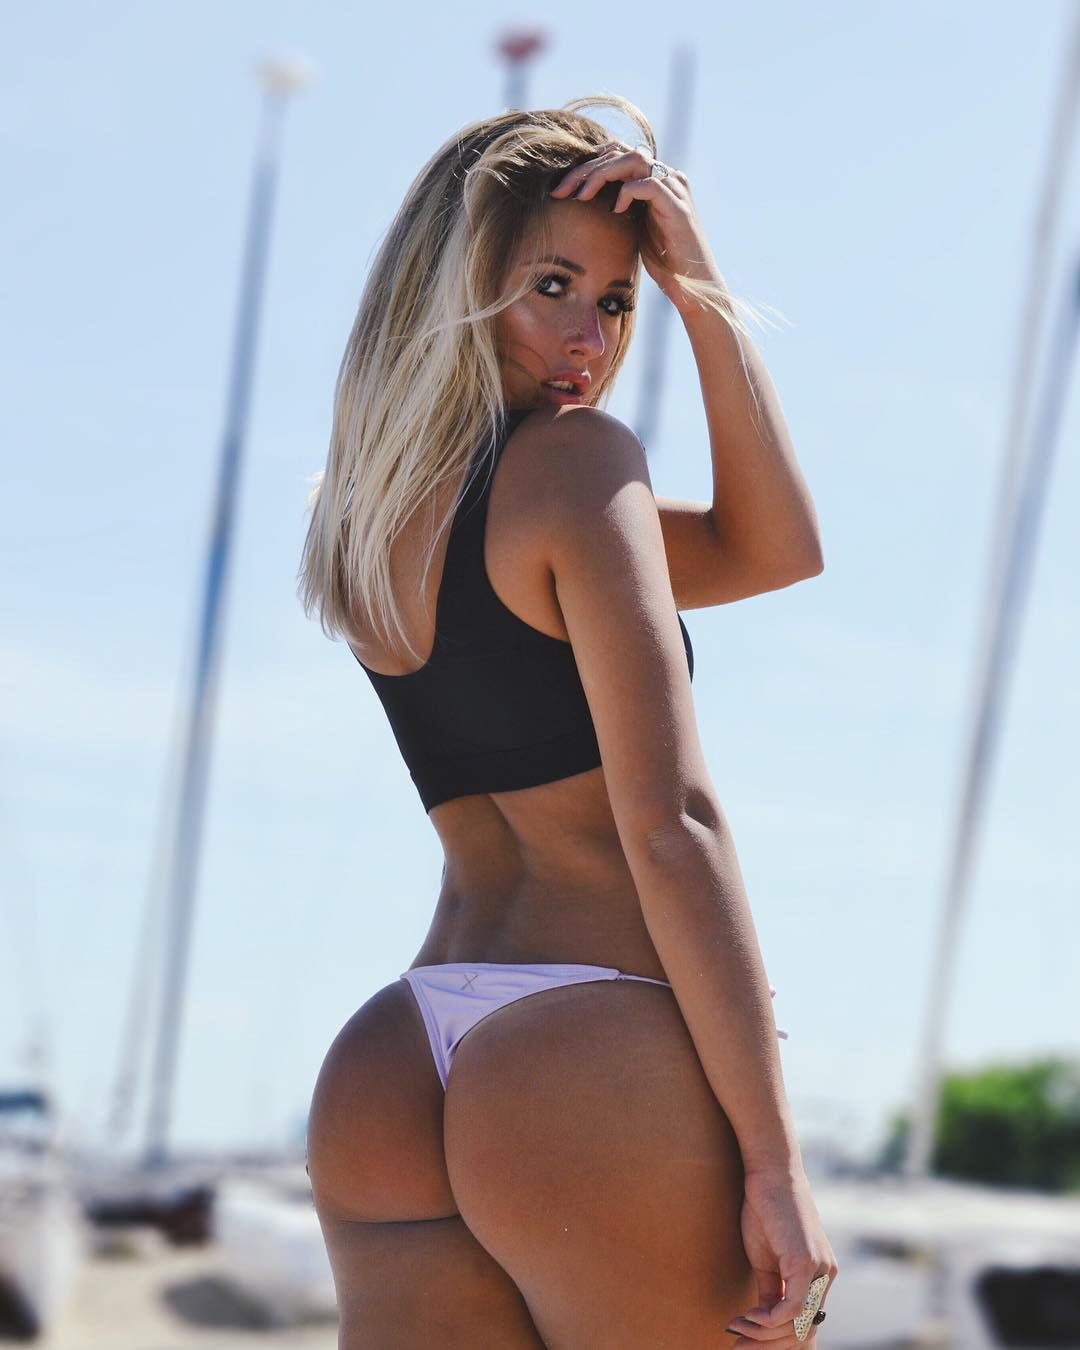 sexy young blonde model Kiki Passo showing off her perfect booty in a thong bikini